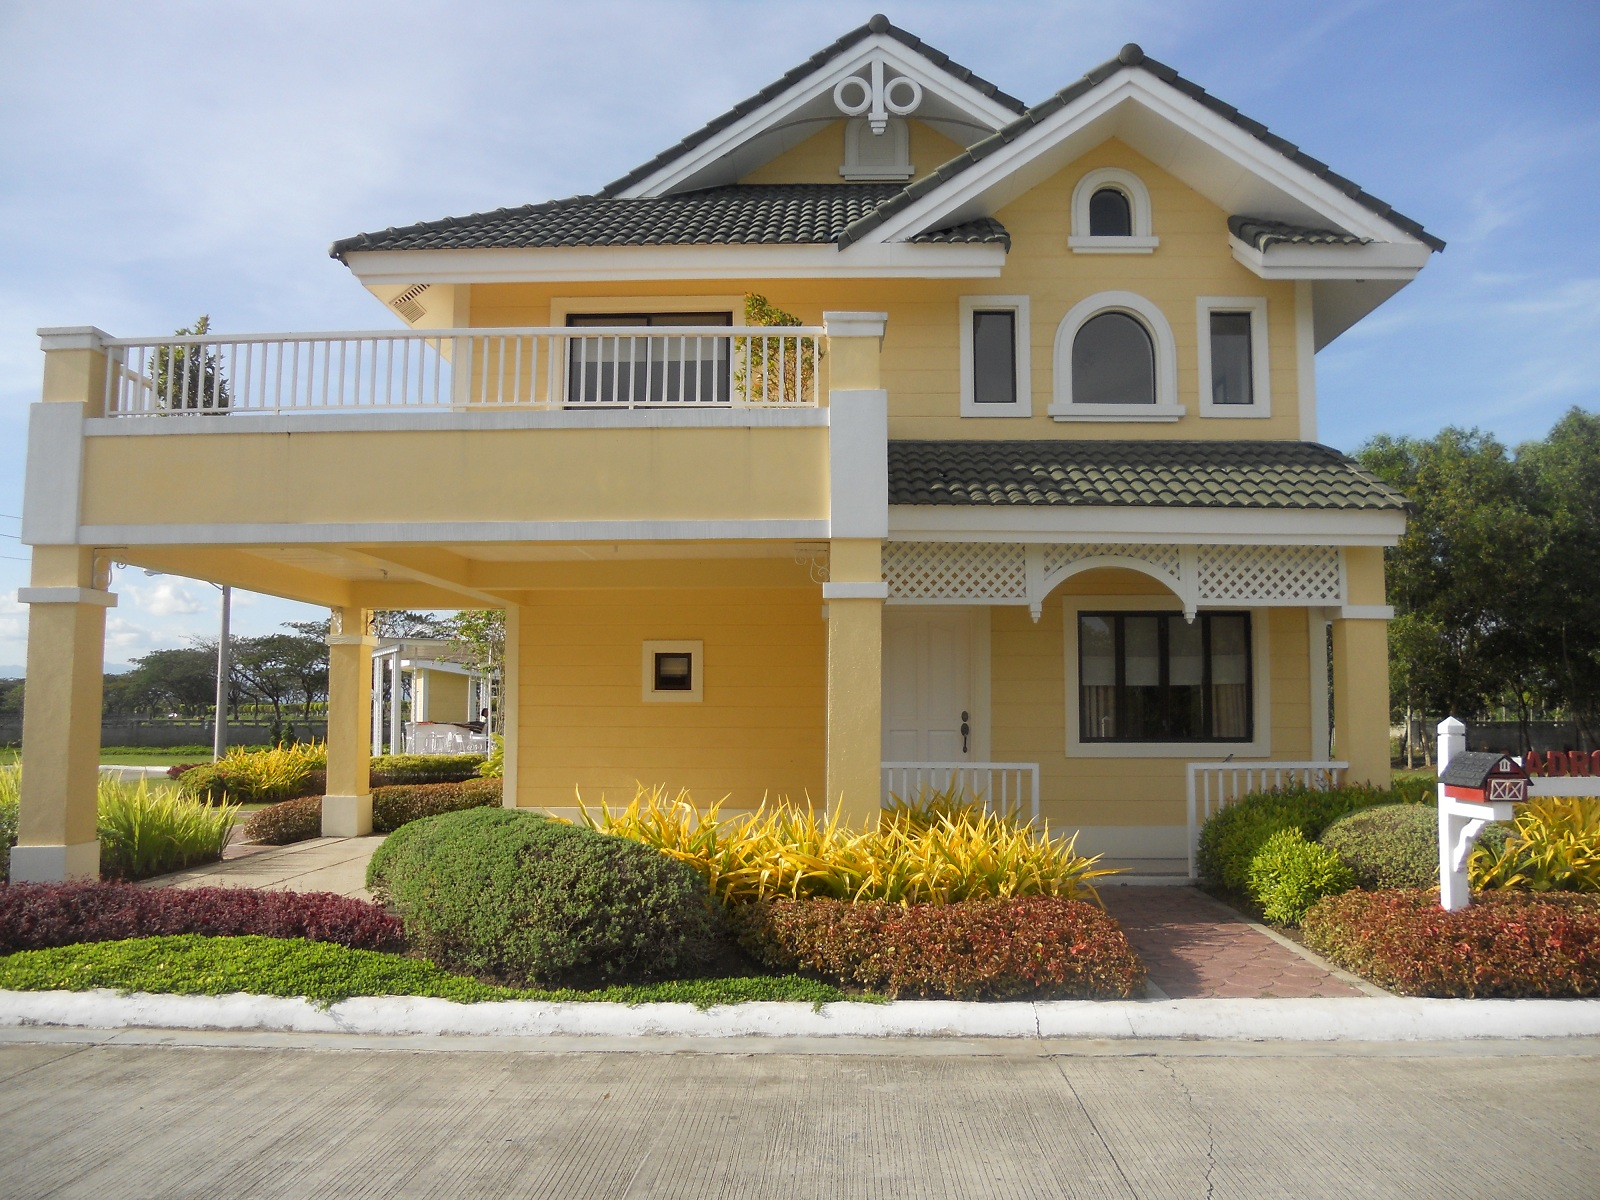 Savannah crest iloilo within savannah iloilo by camella for Philippine home designs ideas